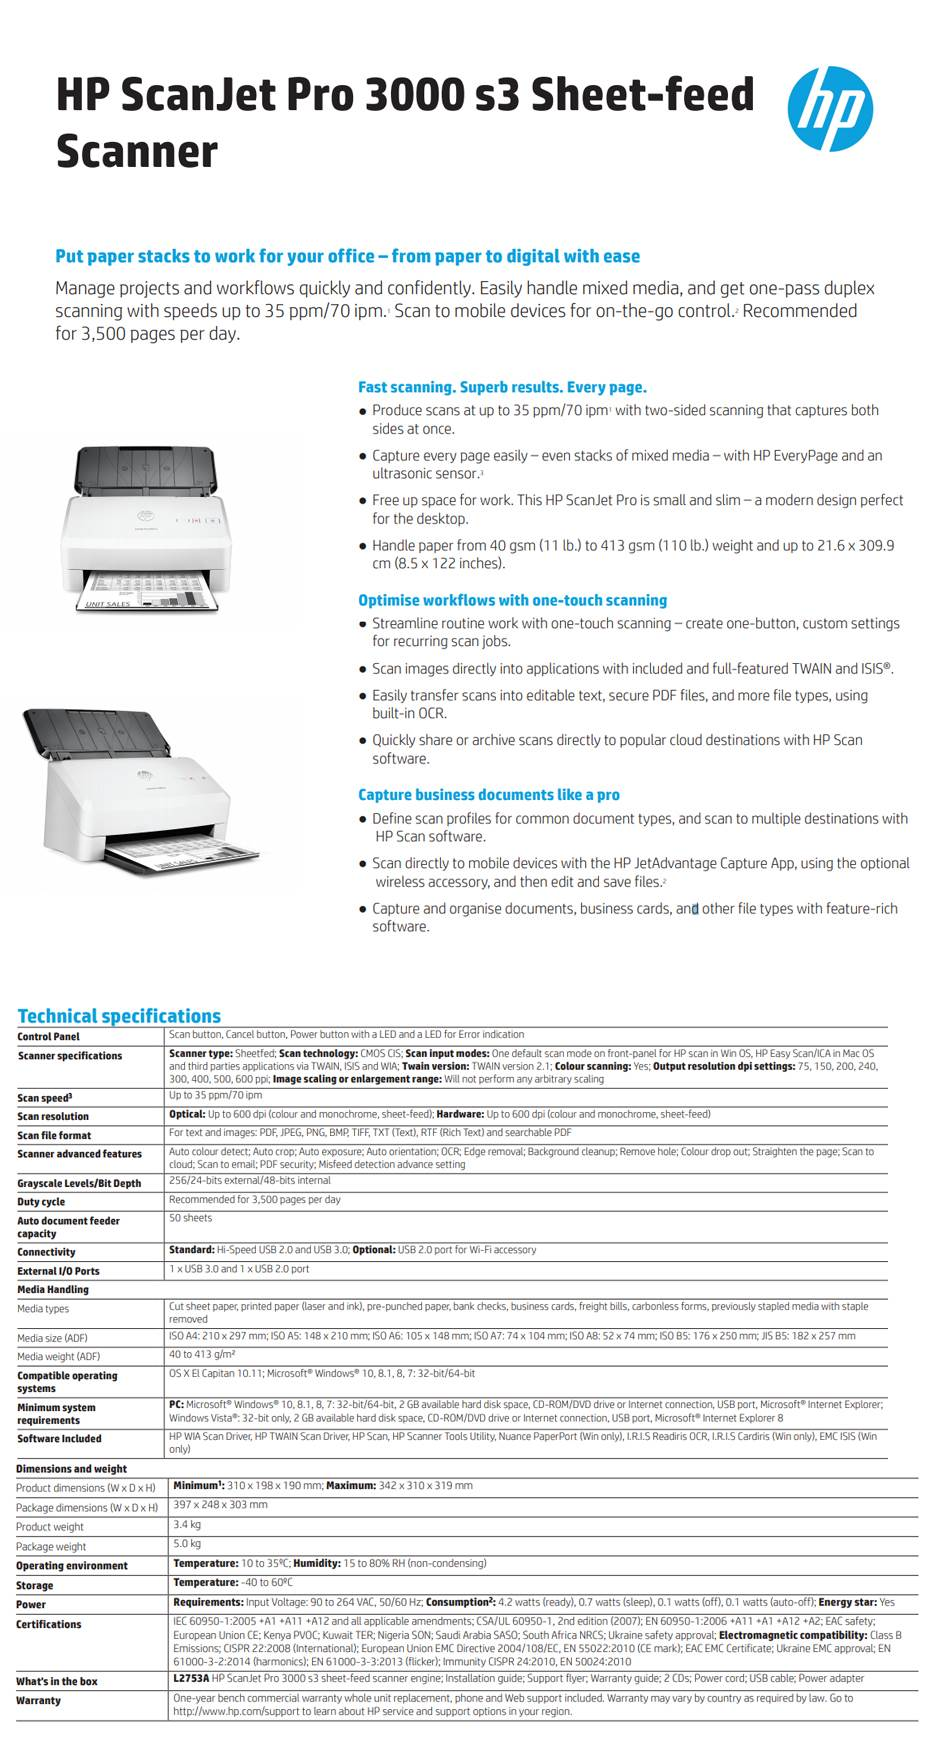 Hp scanjet pro 3000 s3 sheet feed document scanner l2753a mwave hp scanjet pro 3000 s3 sheet feed document scanner l2753a sheetfed up to 600 dpi colour and monochrome sheet feed recommended for 3500 pages per reheart Choice Image